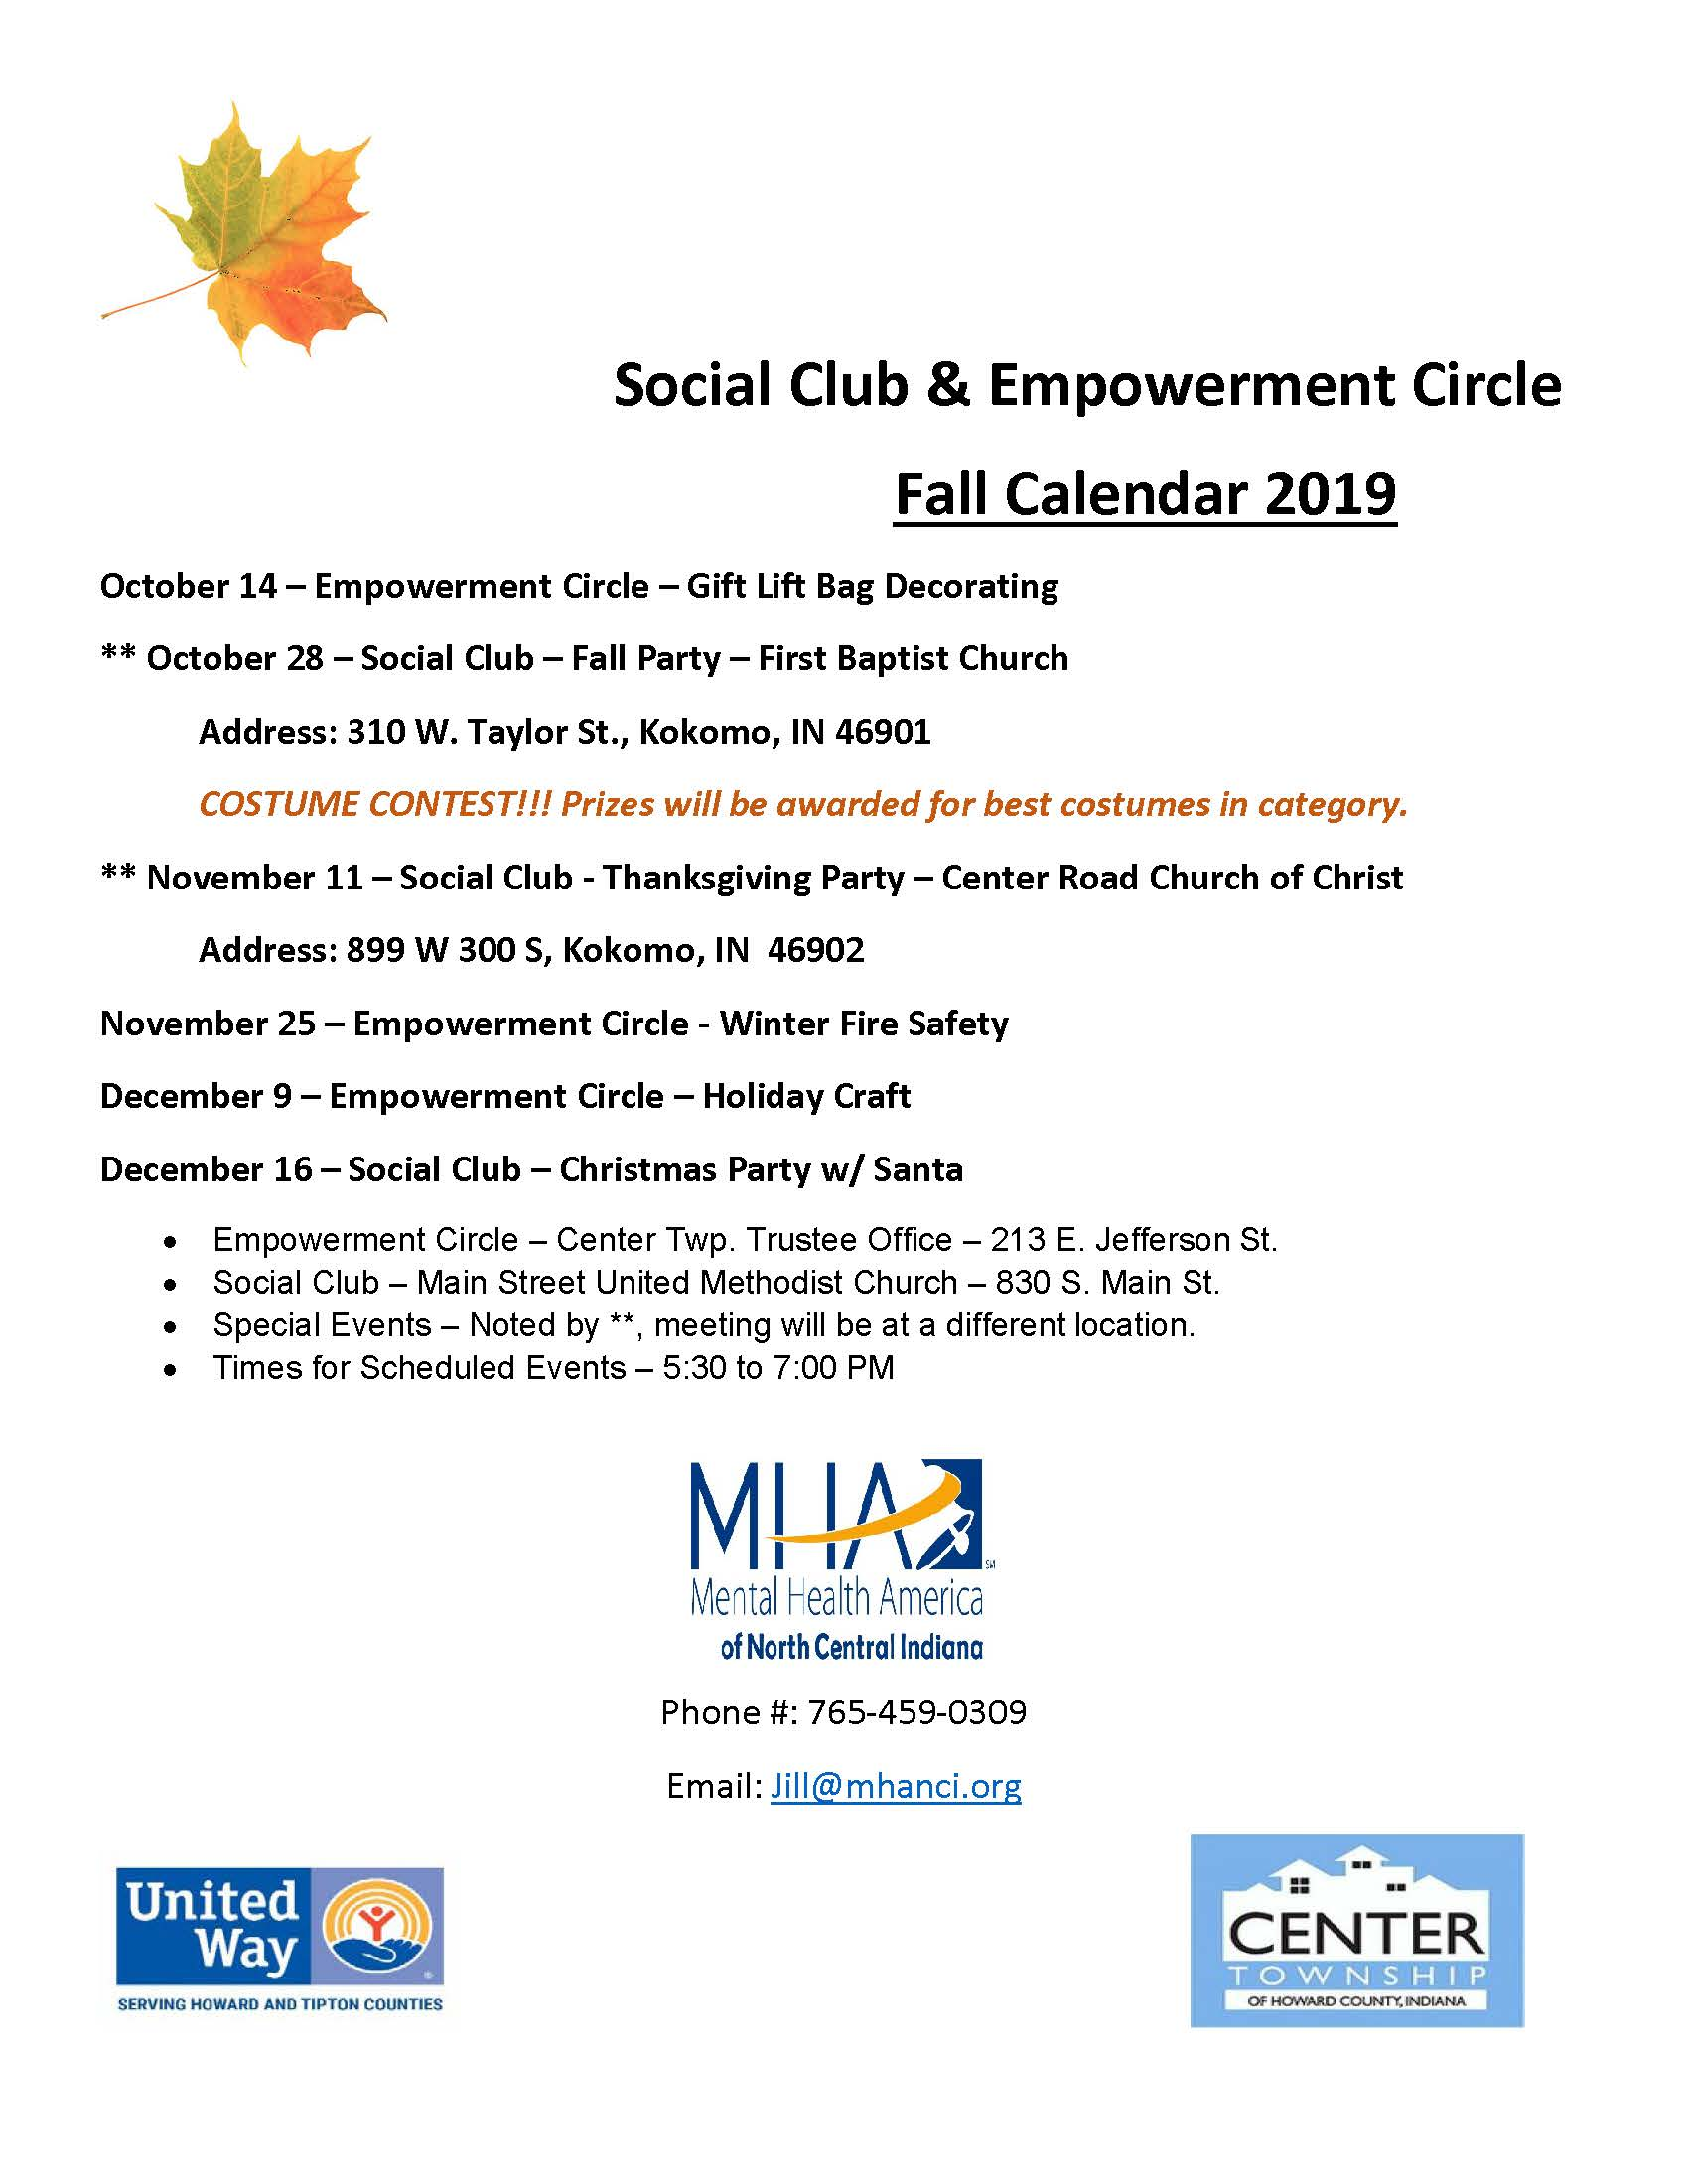 Social Club & Empowerment Circle - 4th Quarter Calendar